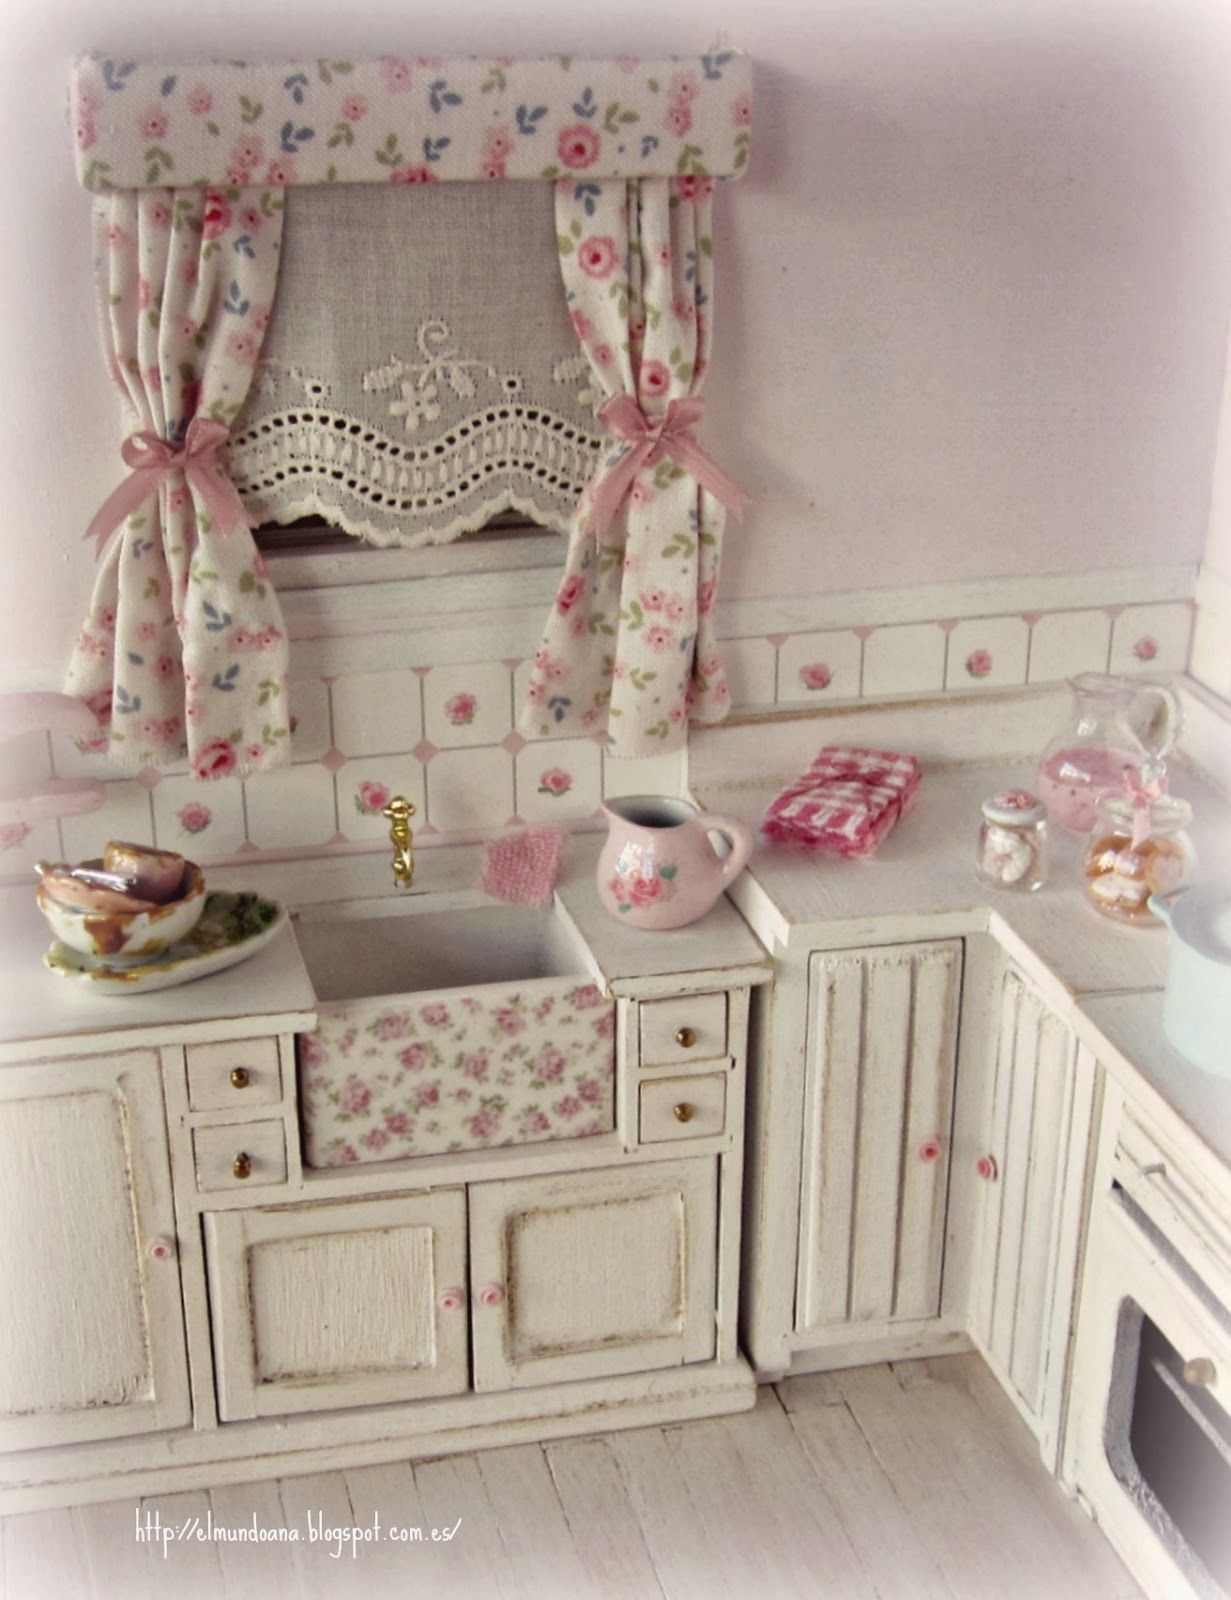 Meubles Furniture Ireland Check Out This Clever Kitchen Shade Use My Irish Hankie